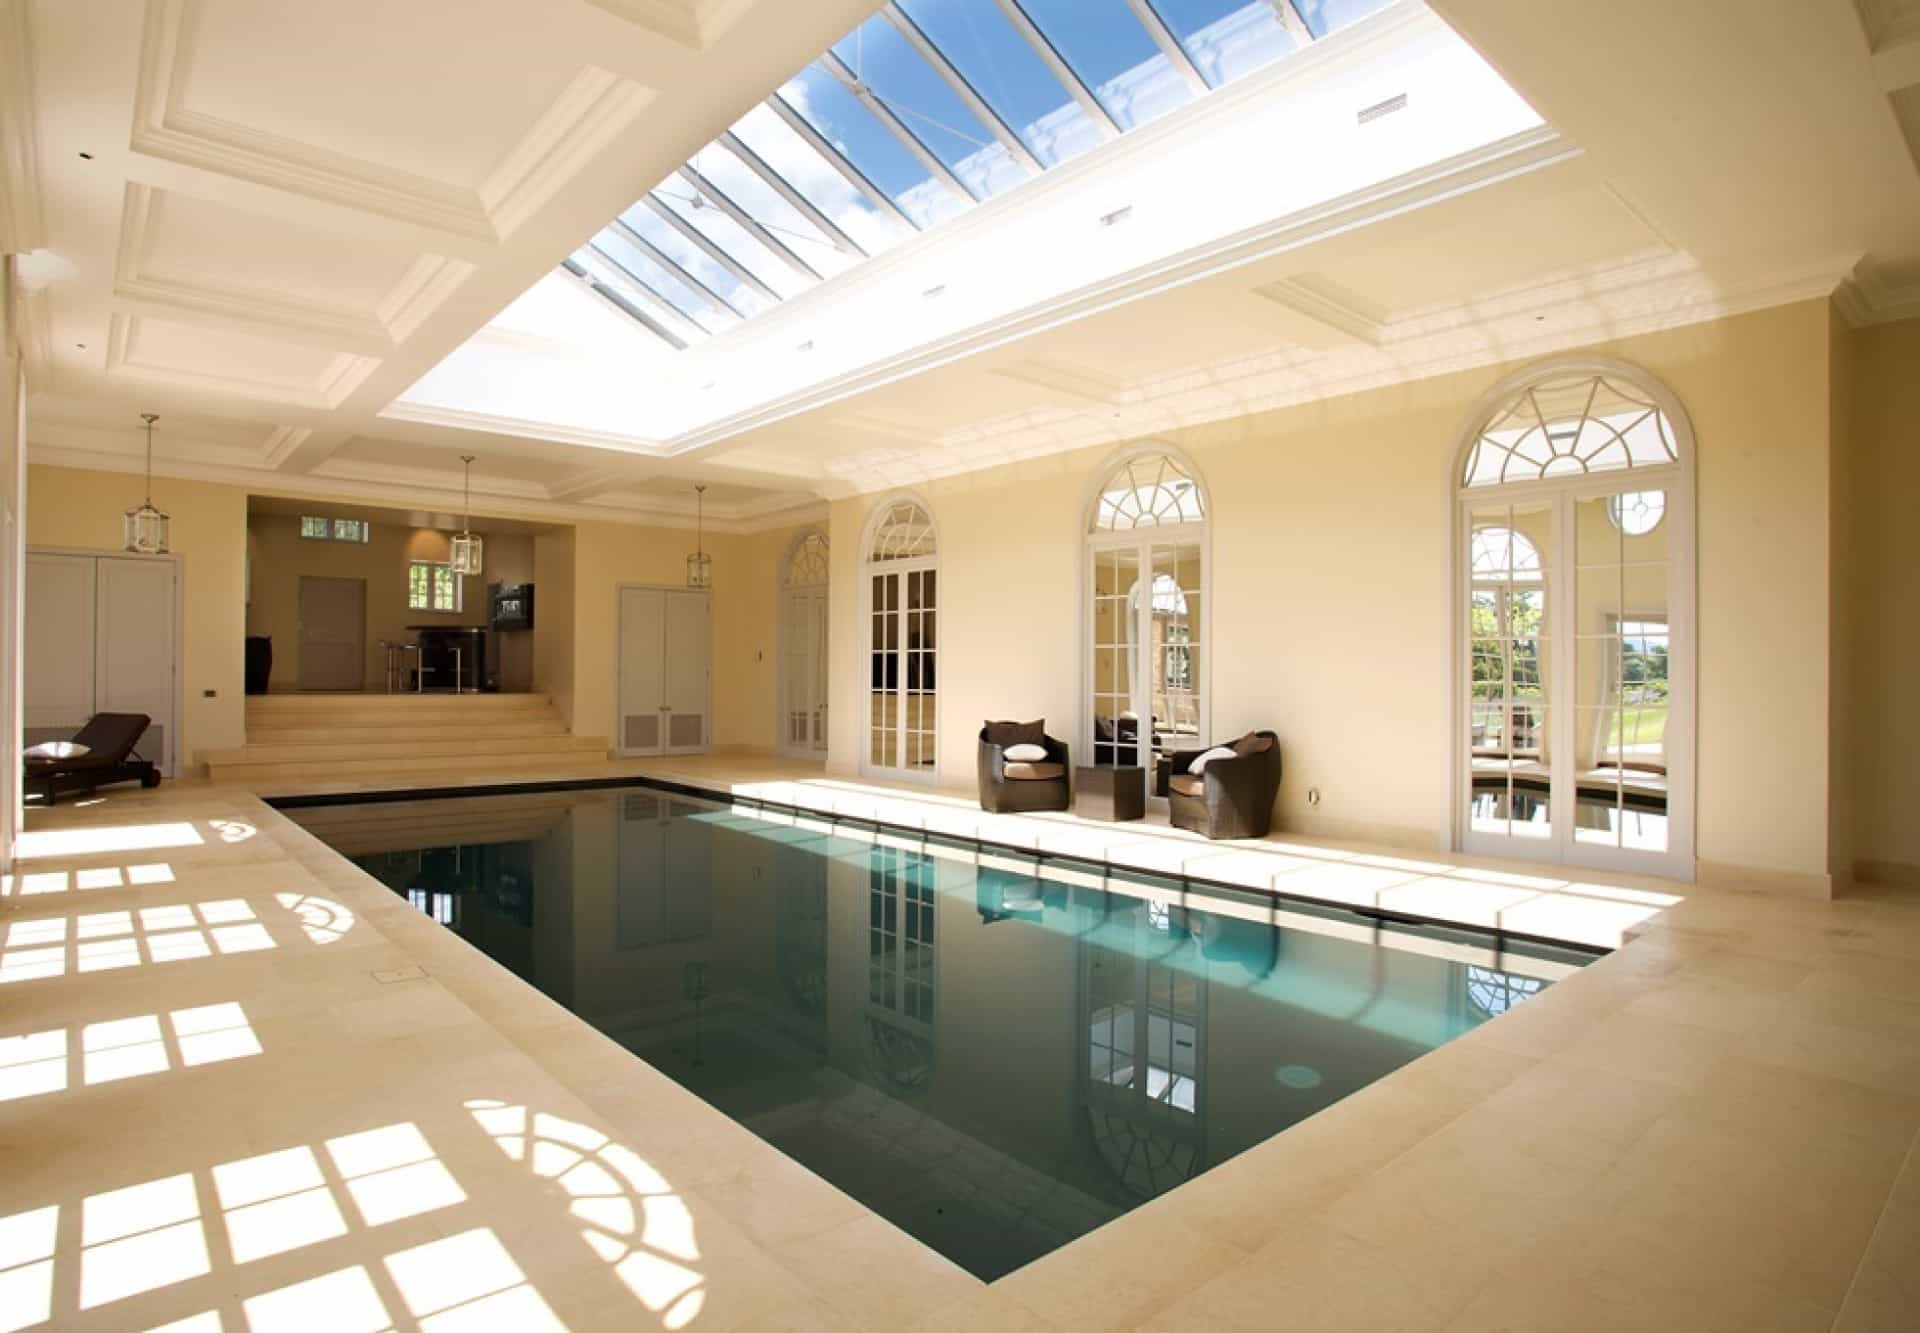 Indoor Private Swimming Pool With Transparent Ceiling (Image 6 of 14)